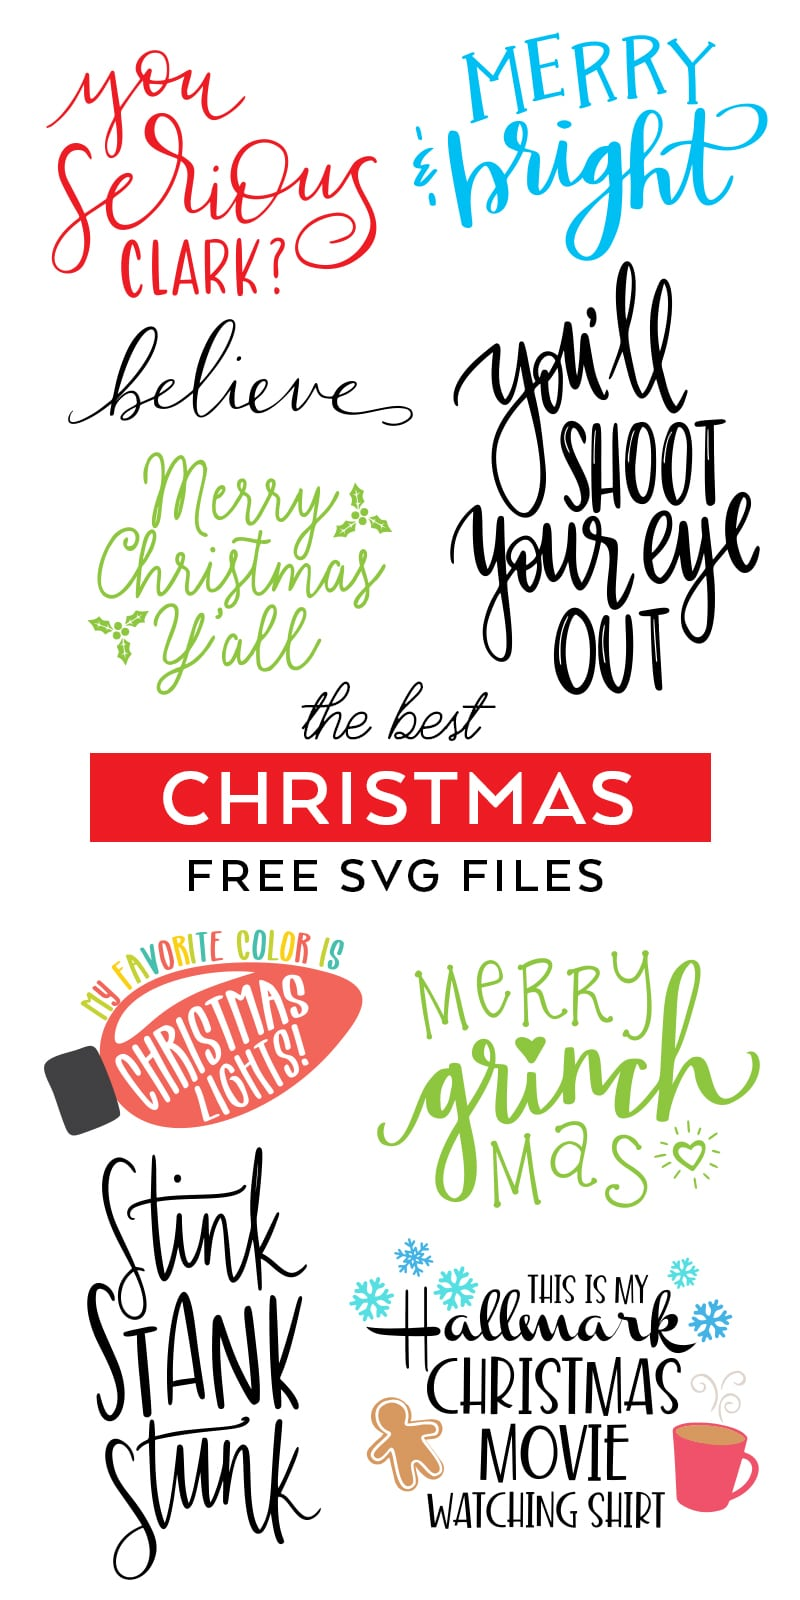 Make christmas shirts, holiday decor, and more with these 16 free christmas svg files! Best Free Christmas Svg Files Pineapple Paper Co